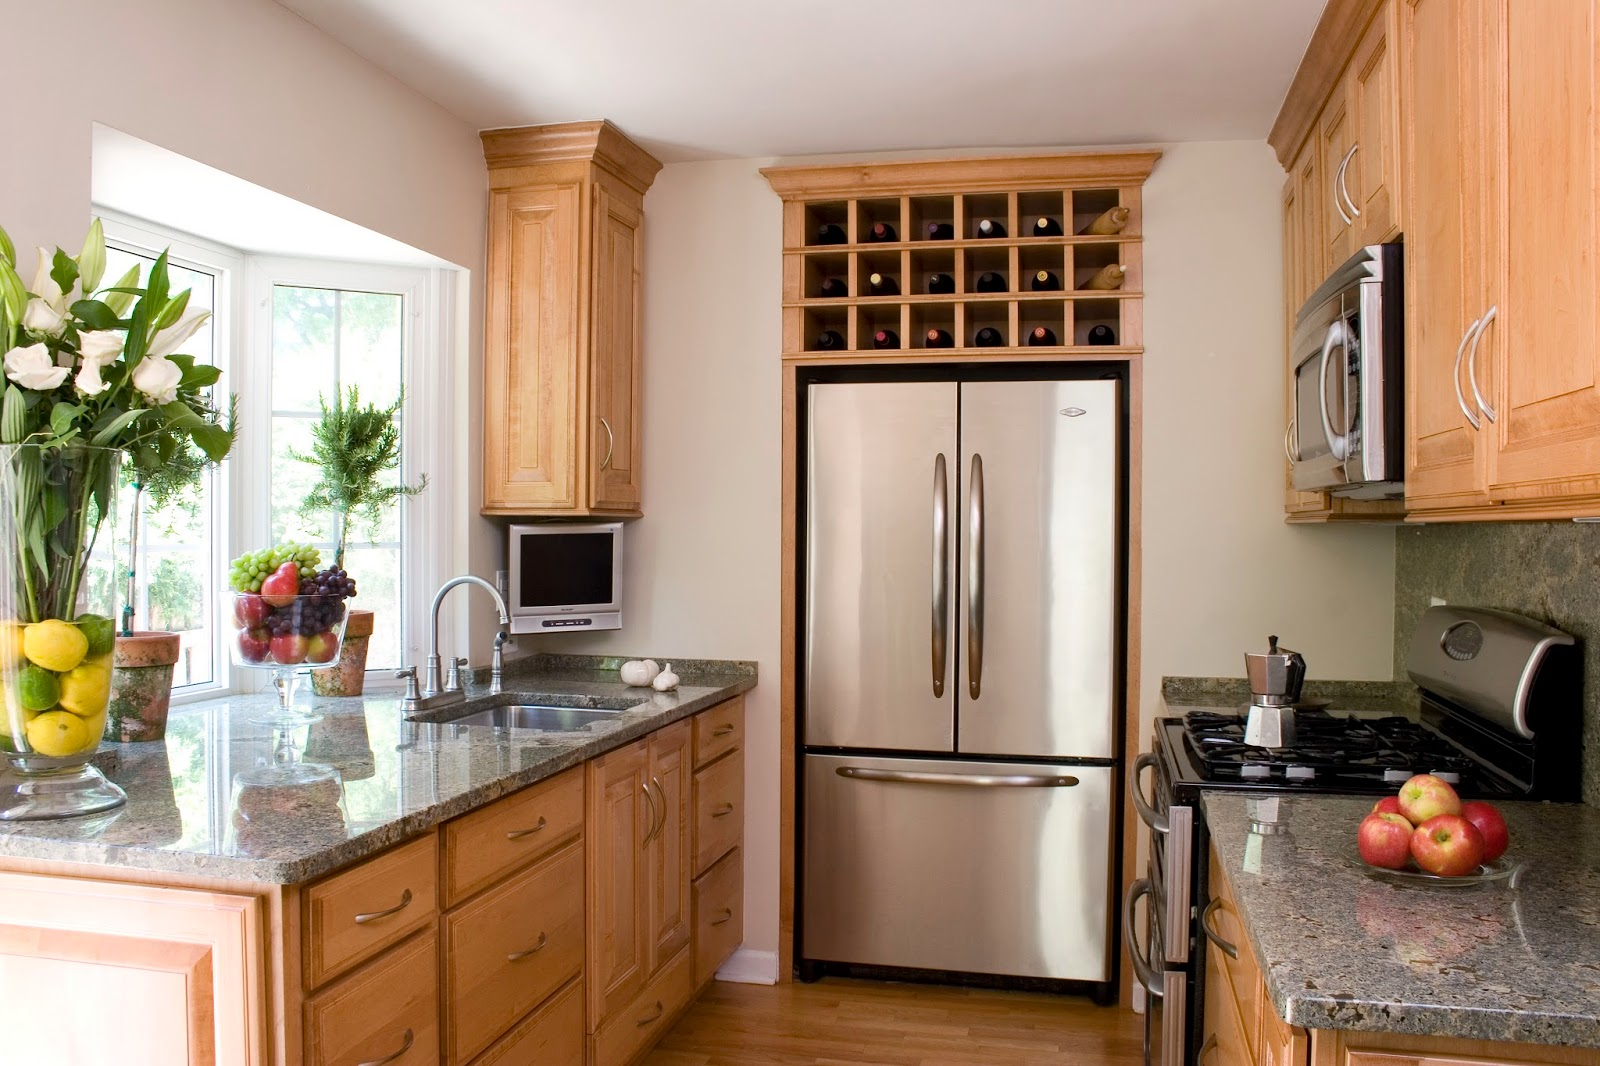 ... Because My Kitchen Is Featured On About.com Small Spaces! Take A Peak.  Just As Important, Rue, I Made The Burritos From Your Post The Other Day  And They ...